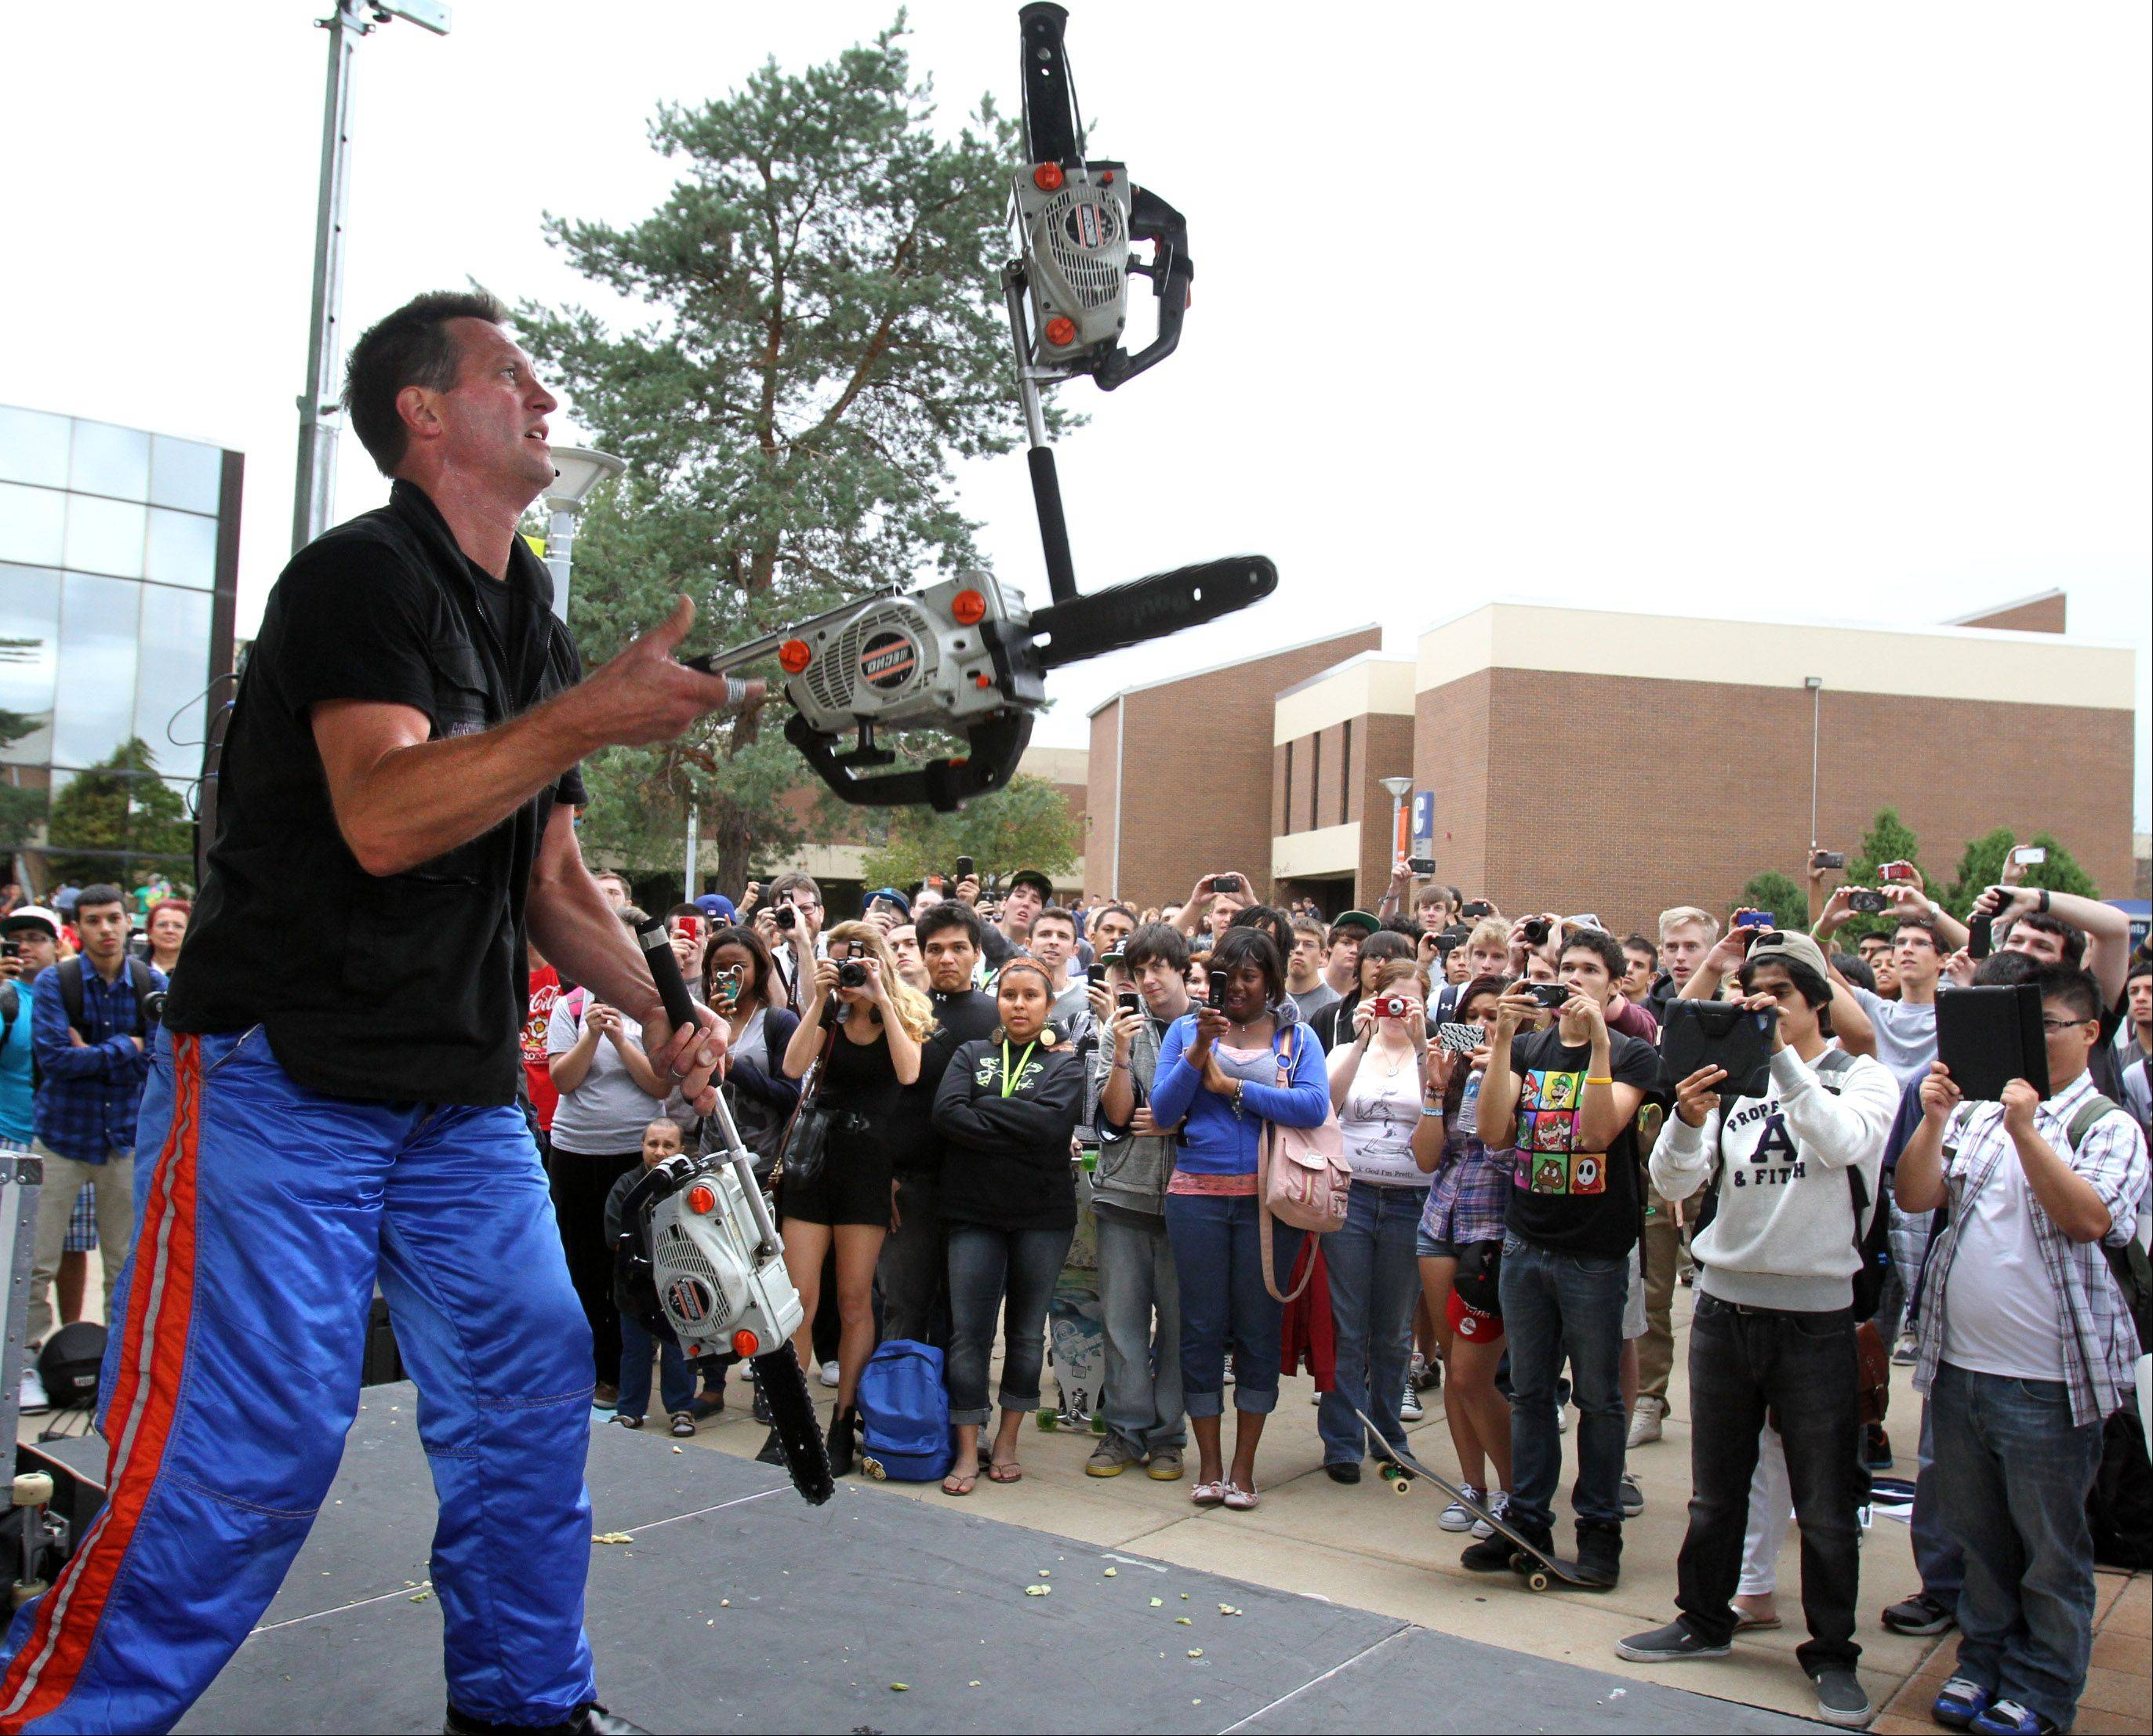 Mad Chad Taylor juggles three chain saws while performing a 30-minute comedy juggling show during Harper College�s Hullabaloo Thursday in Palatine. Taylor, a �Guinness World Records� holder, is known as the �Evel Knievel of comedy,� a reference to the famed daredevil motorcycle stunt man.